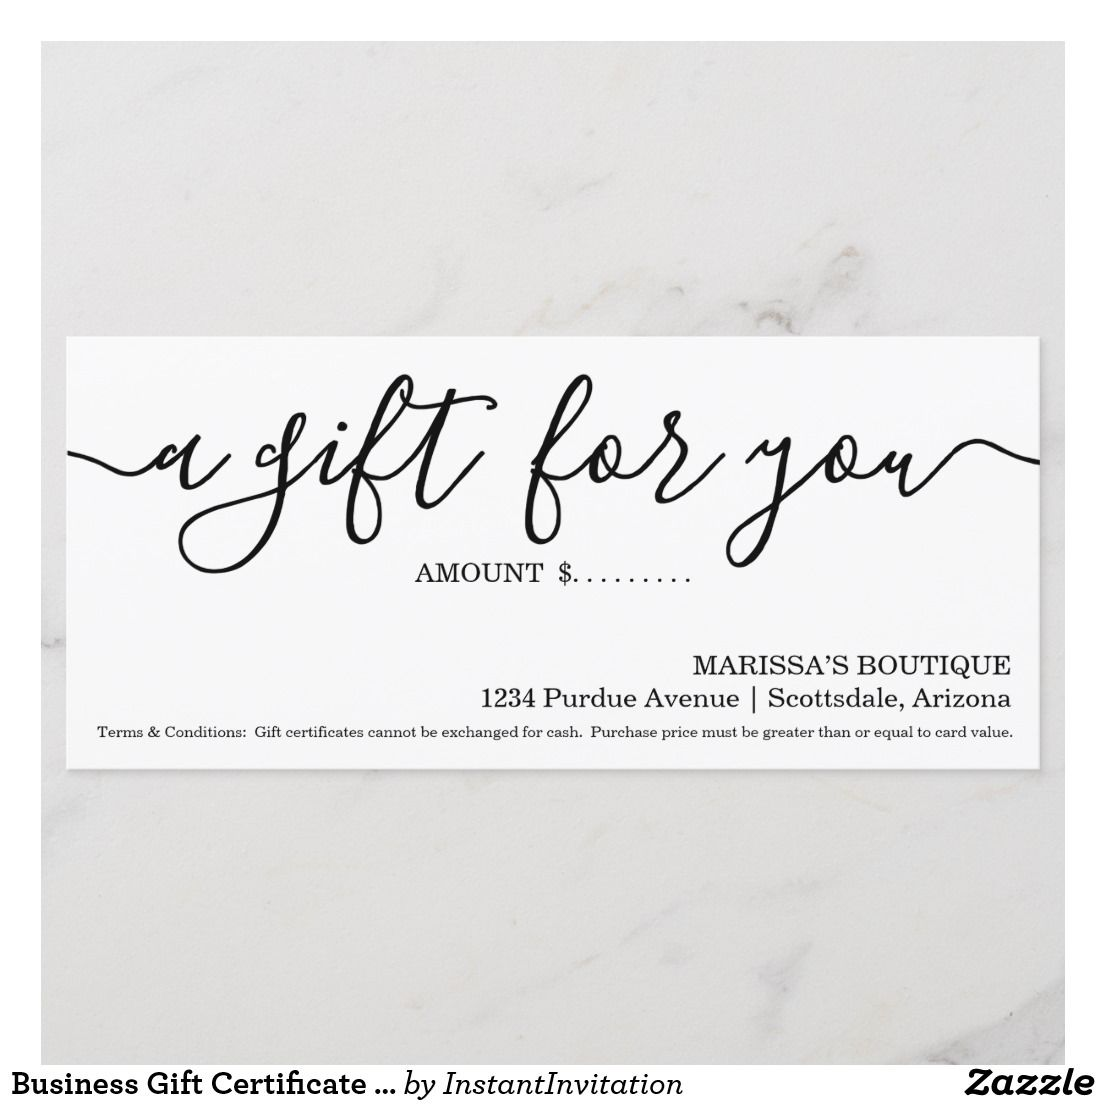 business gift certificate simply right group beauty business